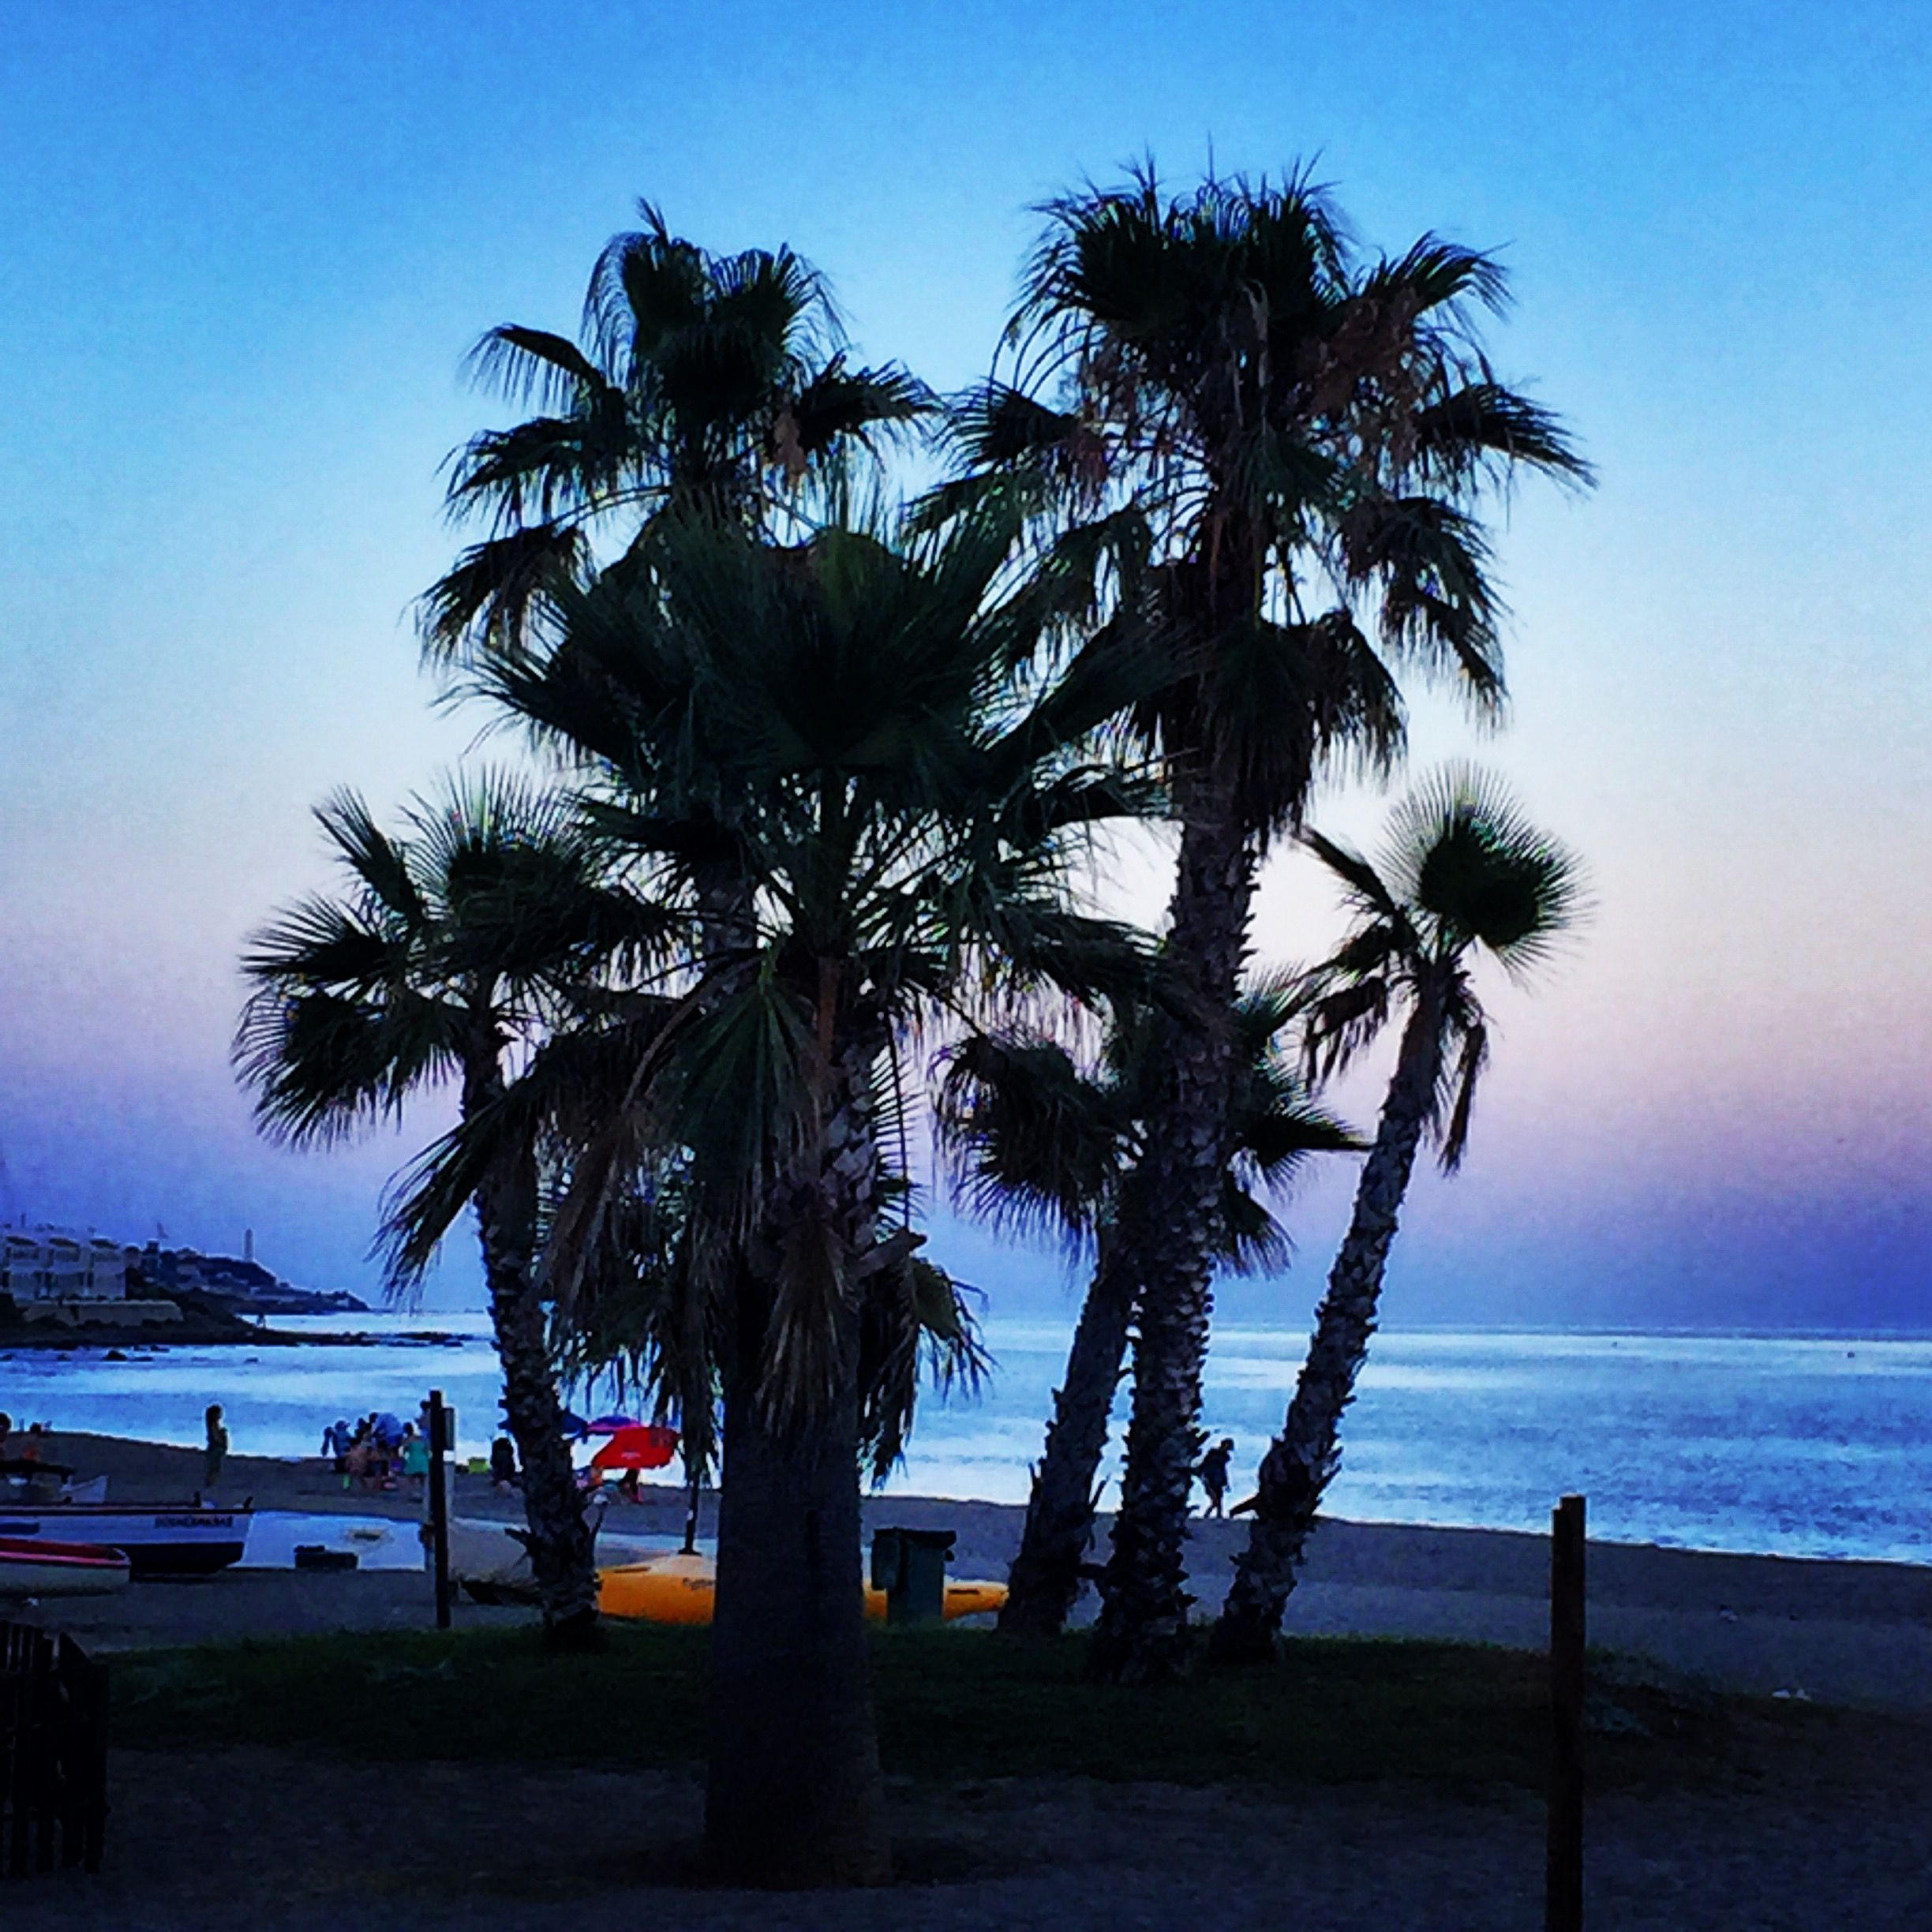 La Cala de Mijas in Andalucia, Spain. At the beach at sunset under the palm trees. A great place to eat and shop and relax.